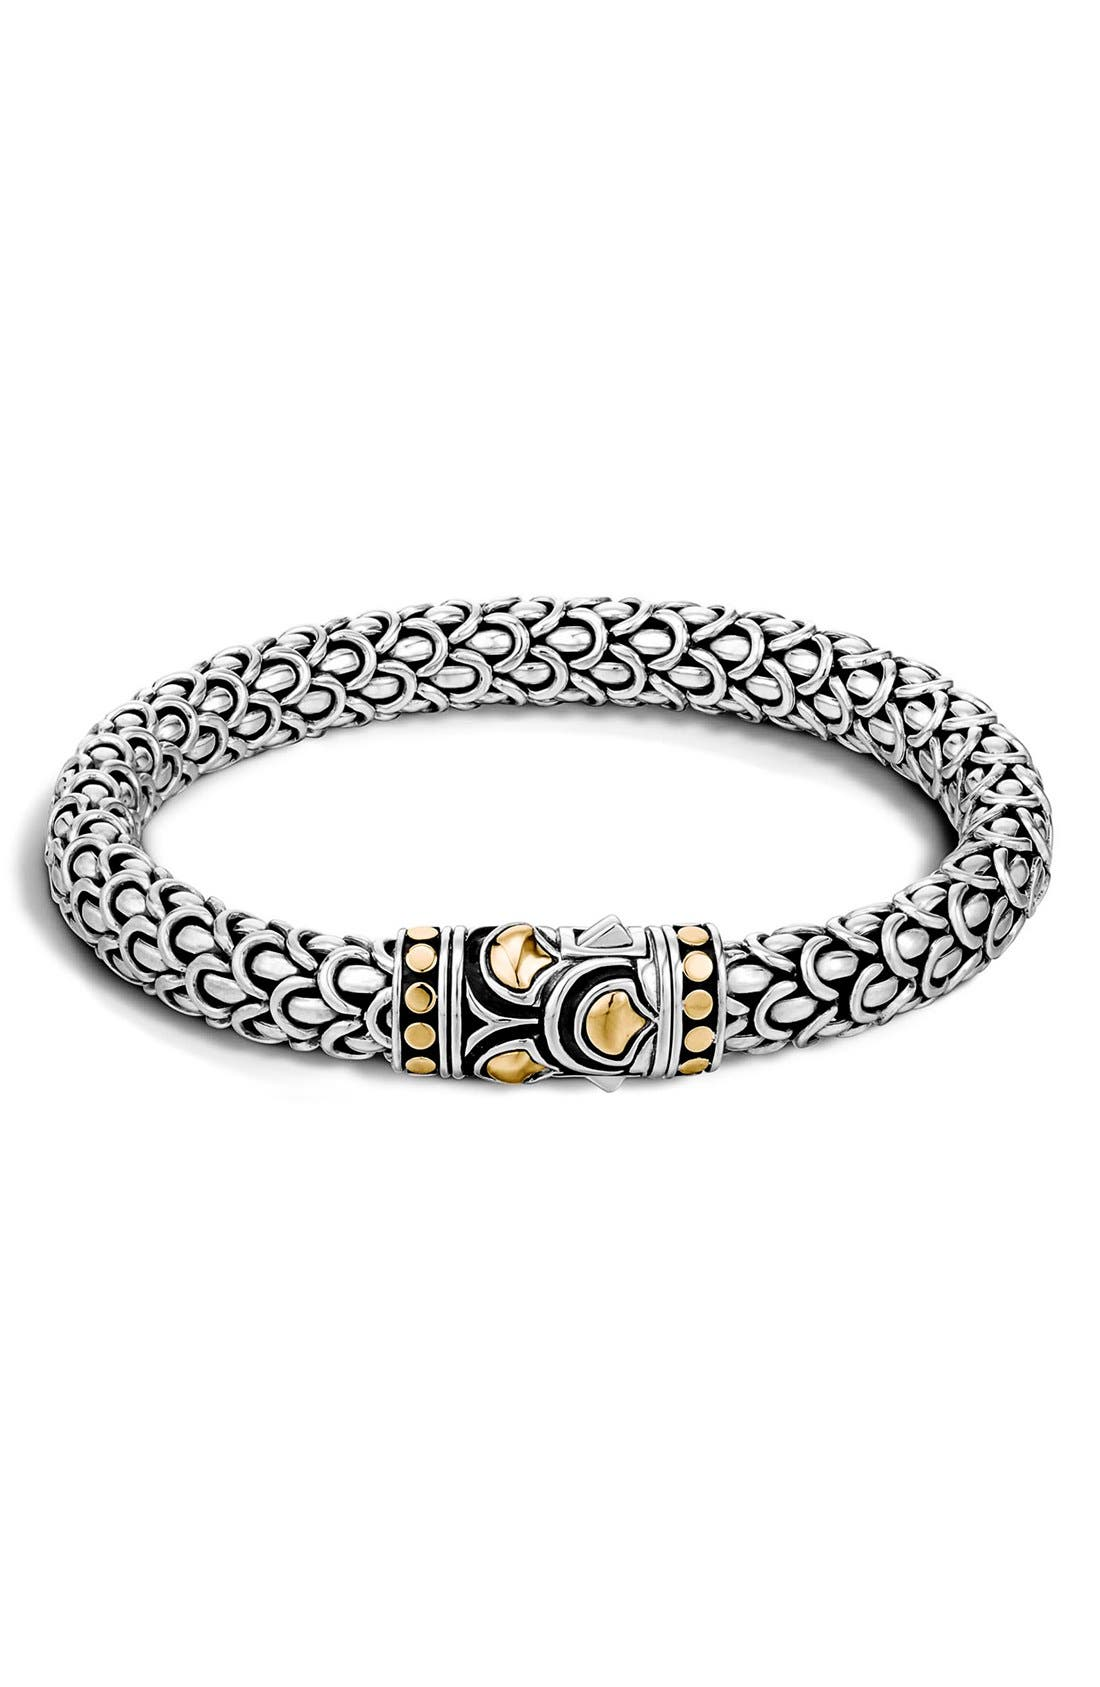 Legends Naga 7mm Station Bracelet,                         Main,                         color, Silver/ Gold